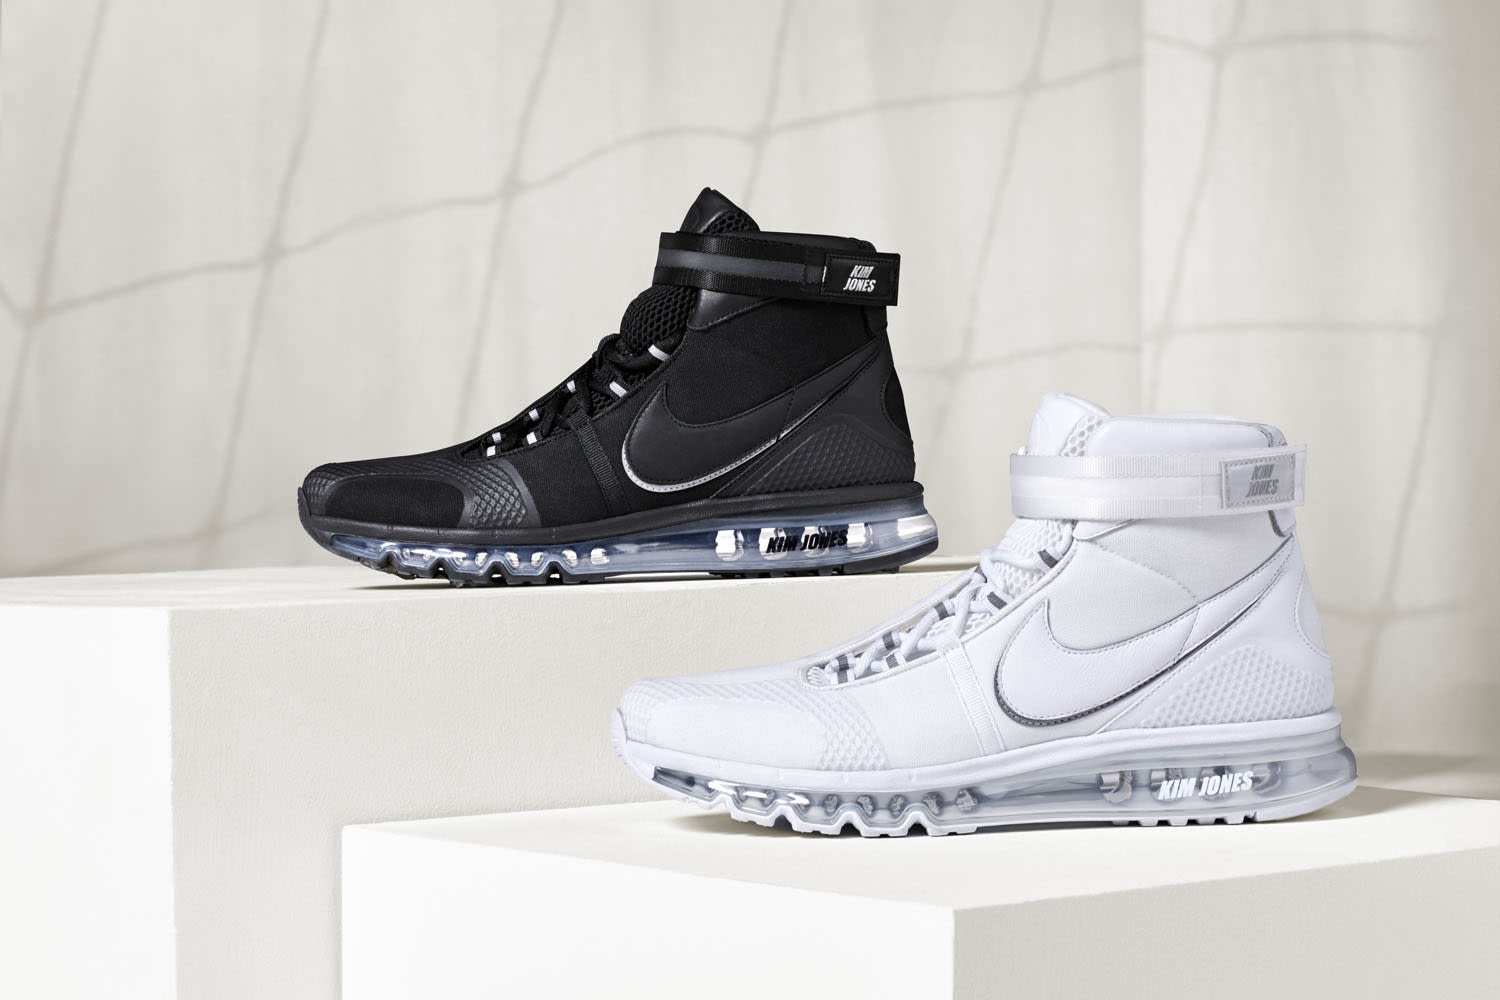 Kim Jones x Nike Football Reimagined (14)